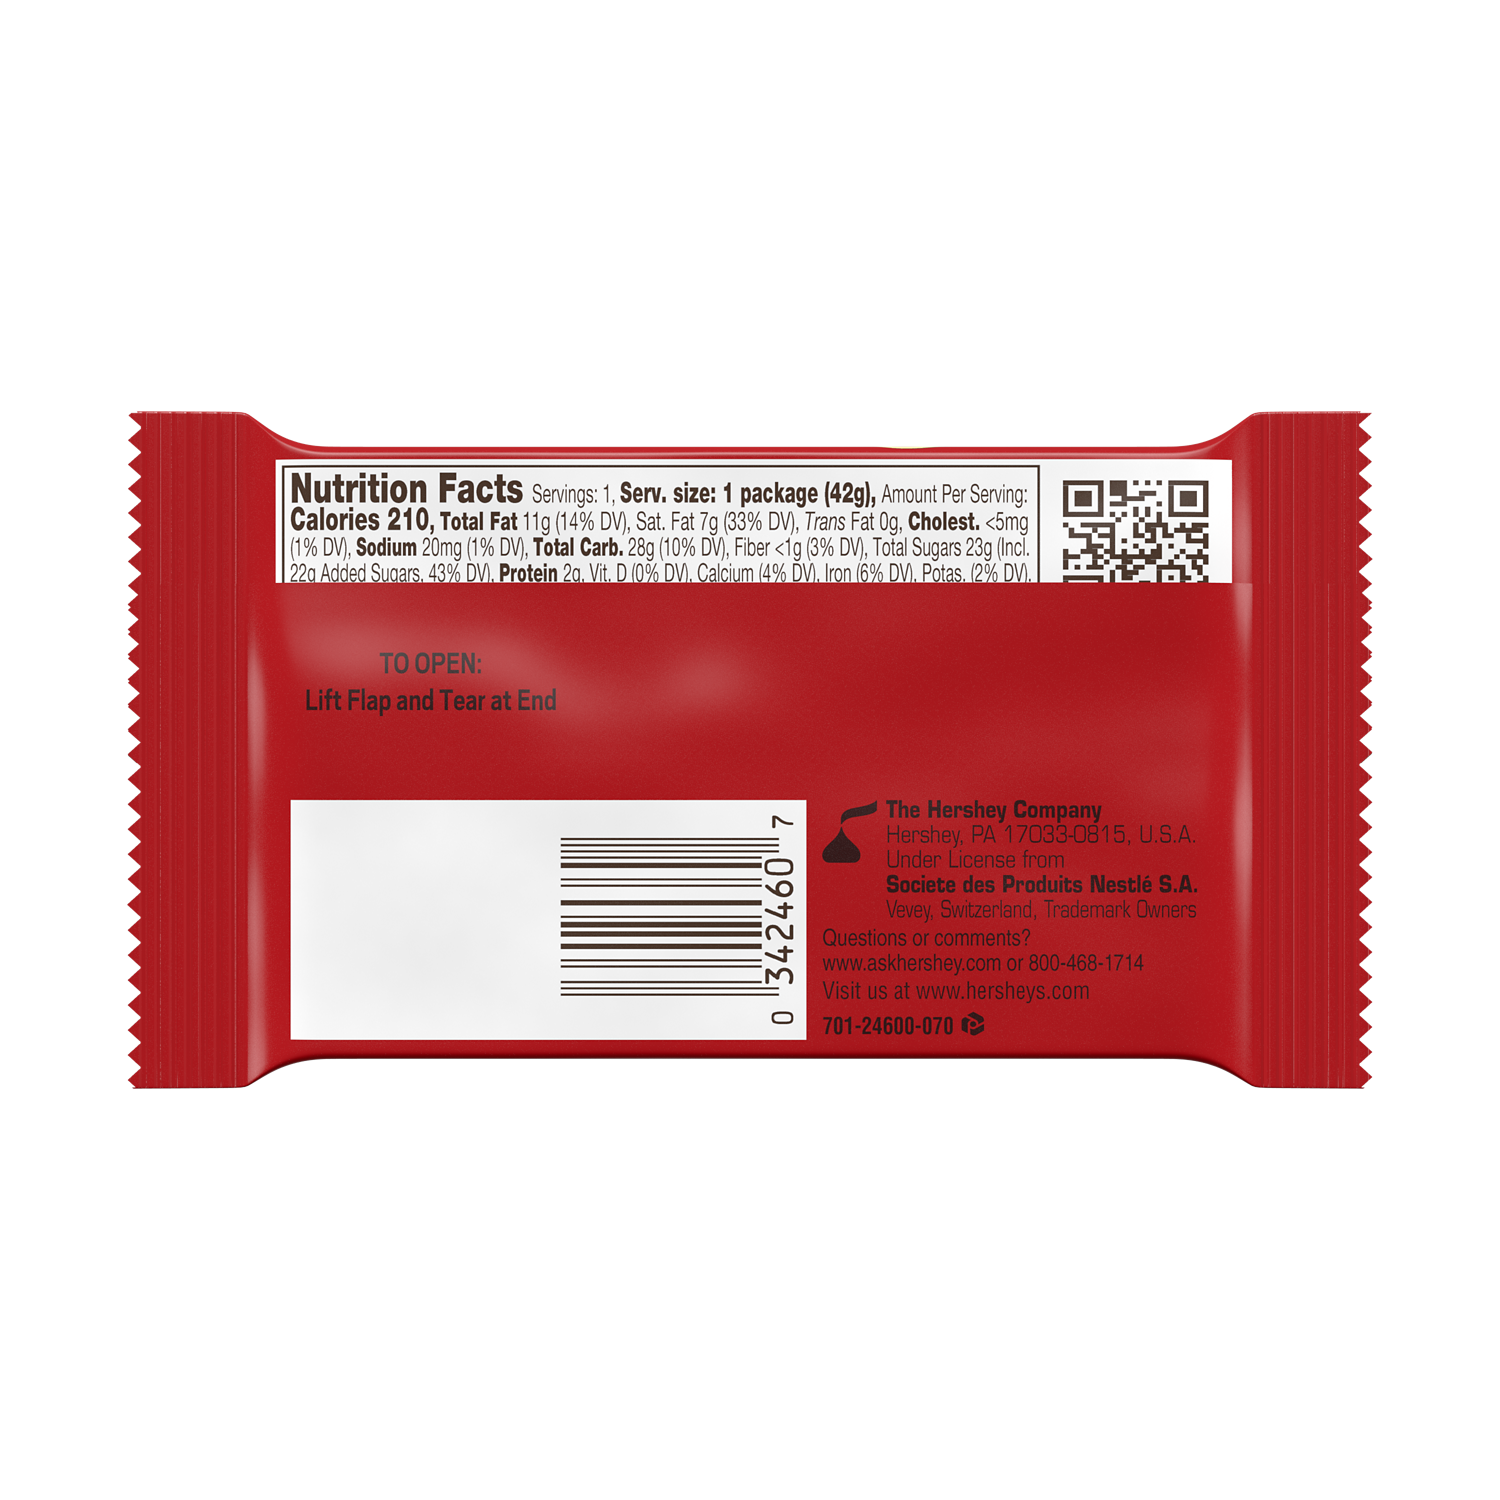 KIT KAT® Milk Chocolate Candy Bar, 1.5 oz - Back of Package